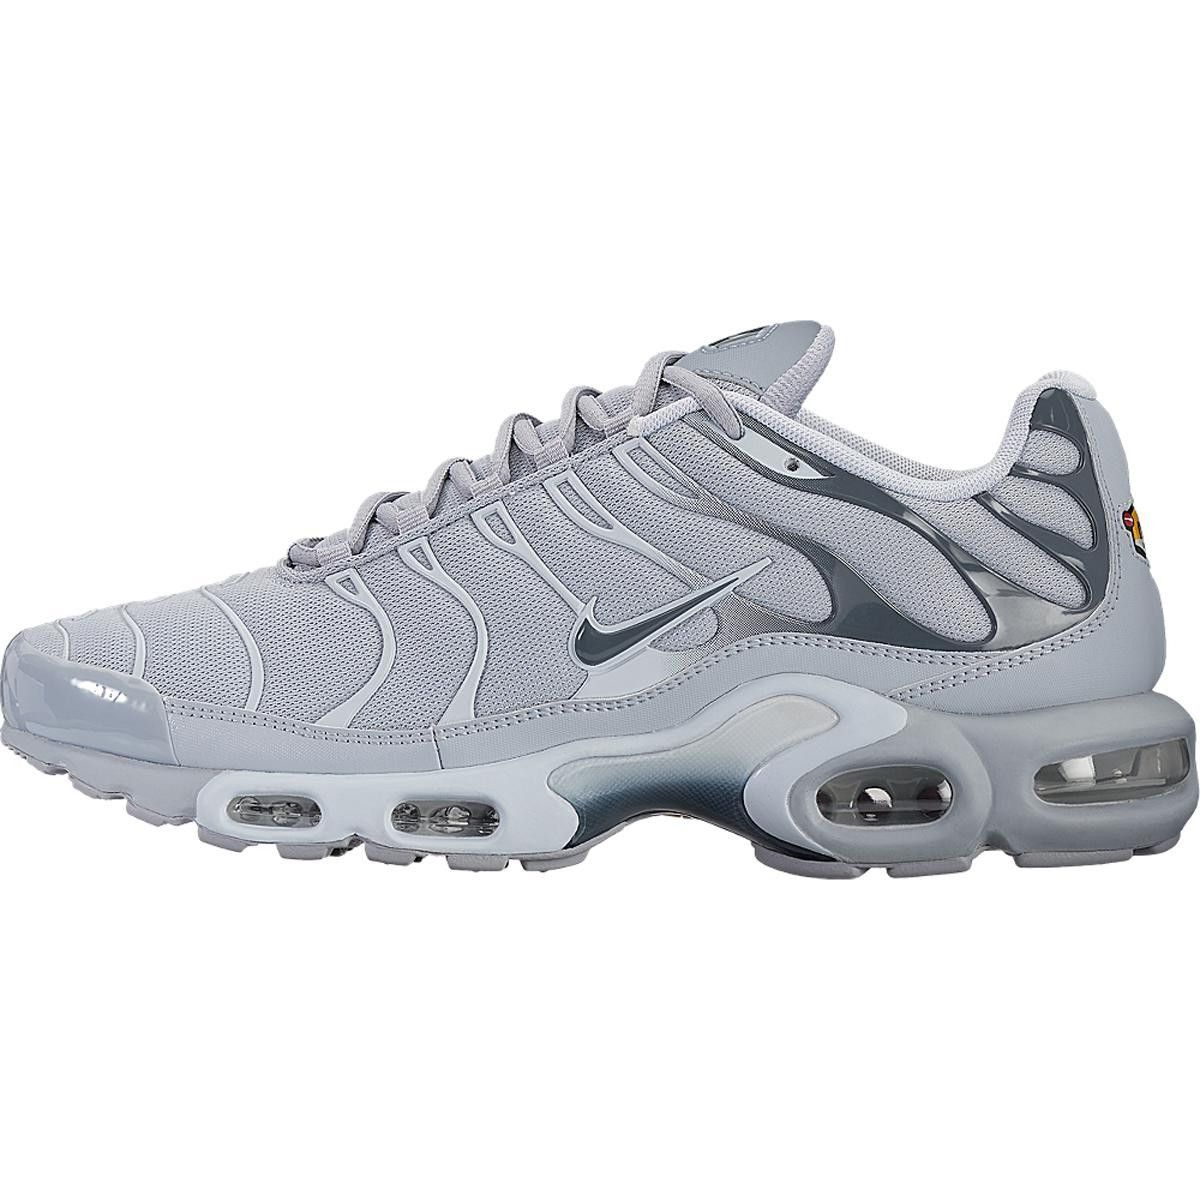 Basket Nike Air Max Plus - 852630-006. Loading zoom d858c2160396